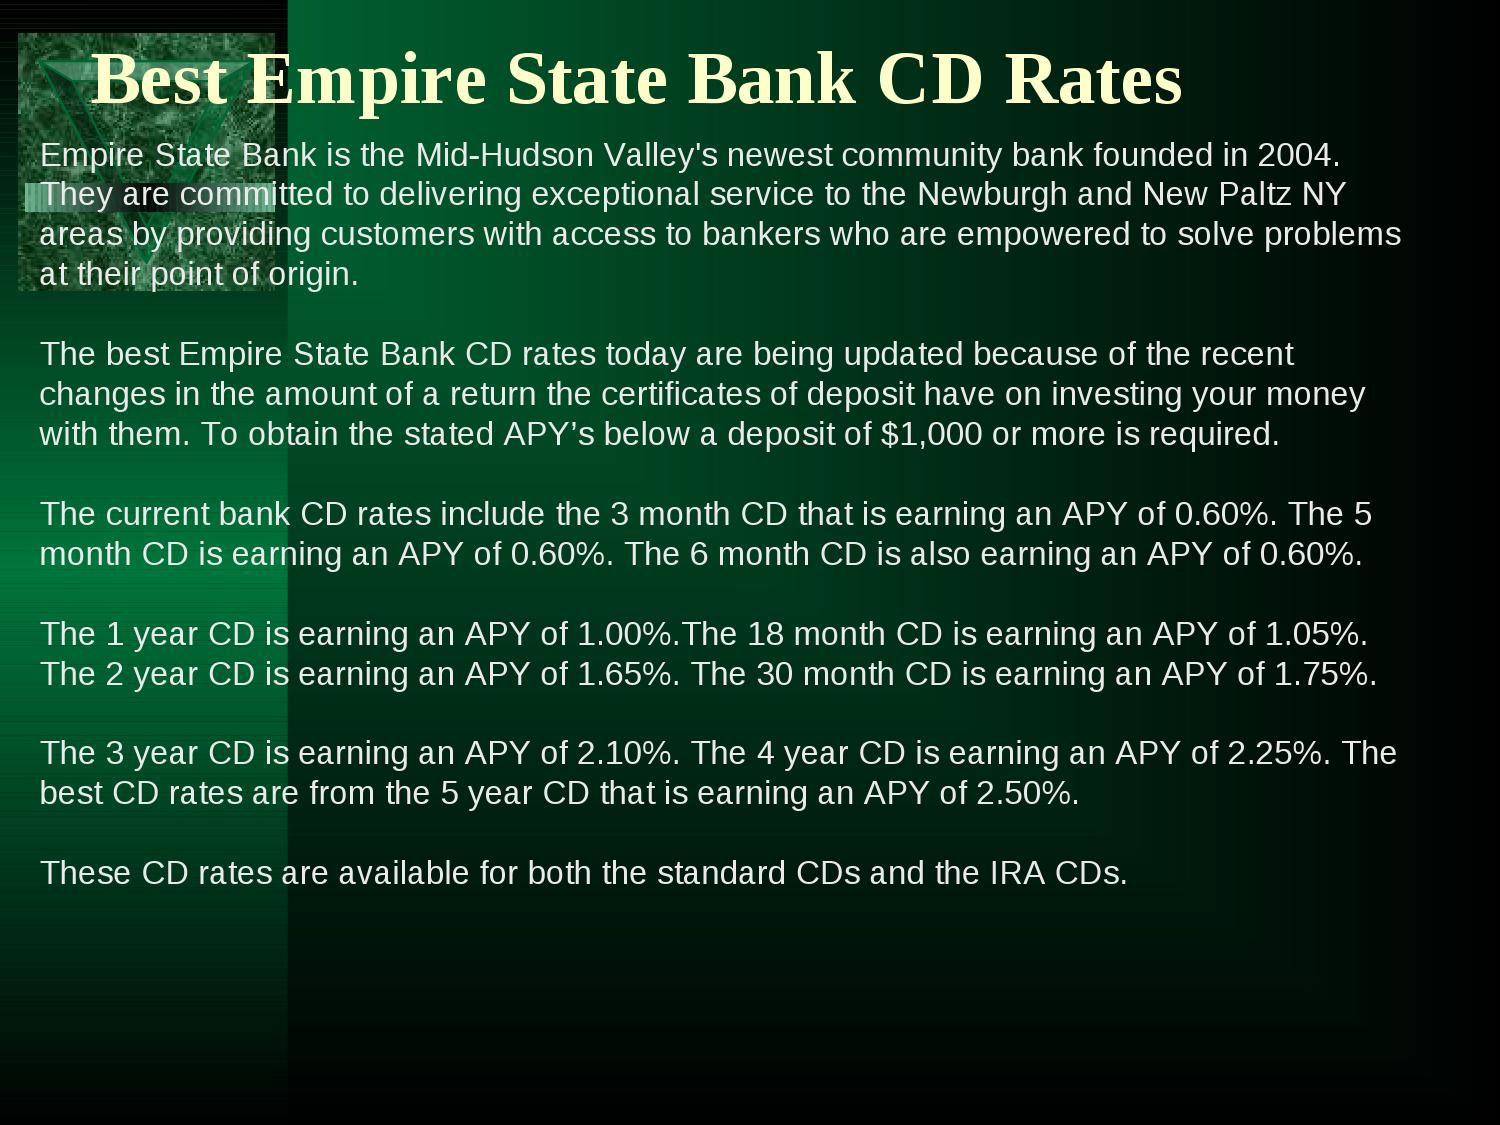 Best empire state bank cd rates by hubert oden issuu 1betcityfo Images